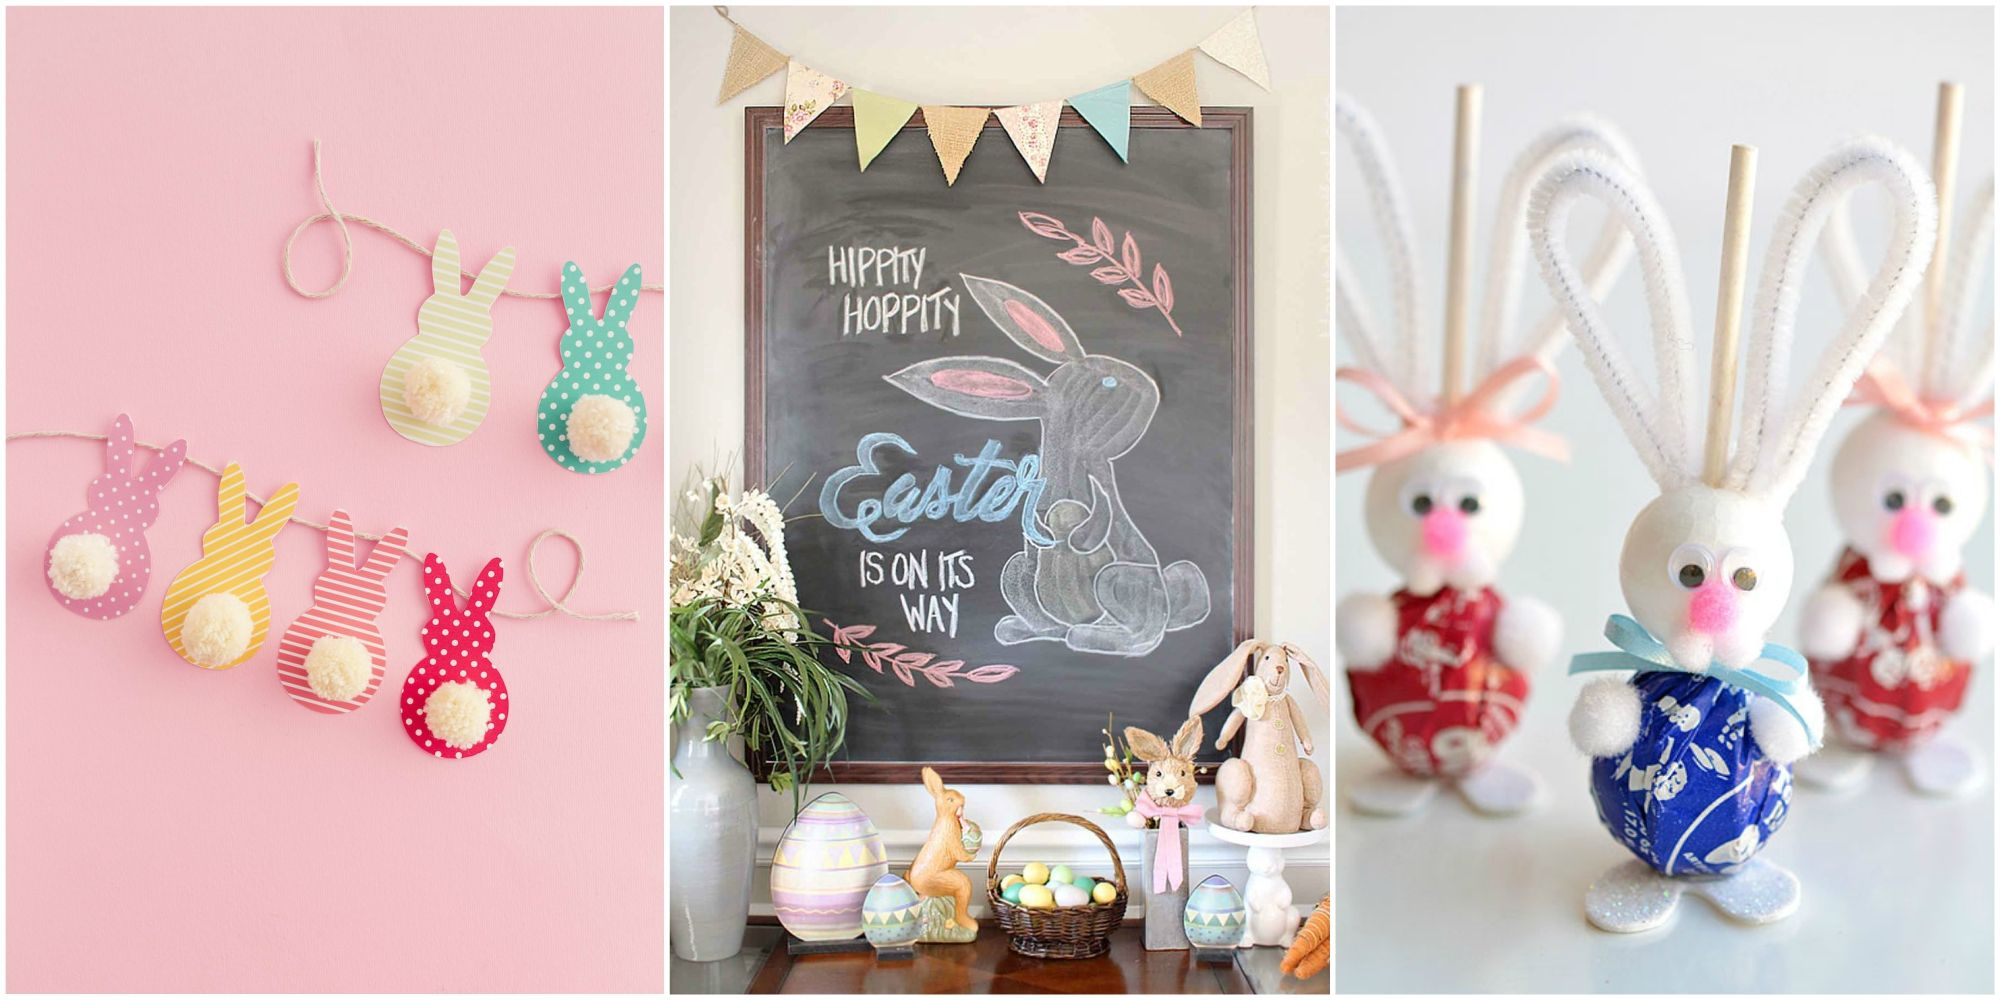 22 DIY Easter Decorations to Make   Homemade Easter Decorating Ideas diy easter decorations